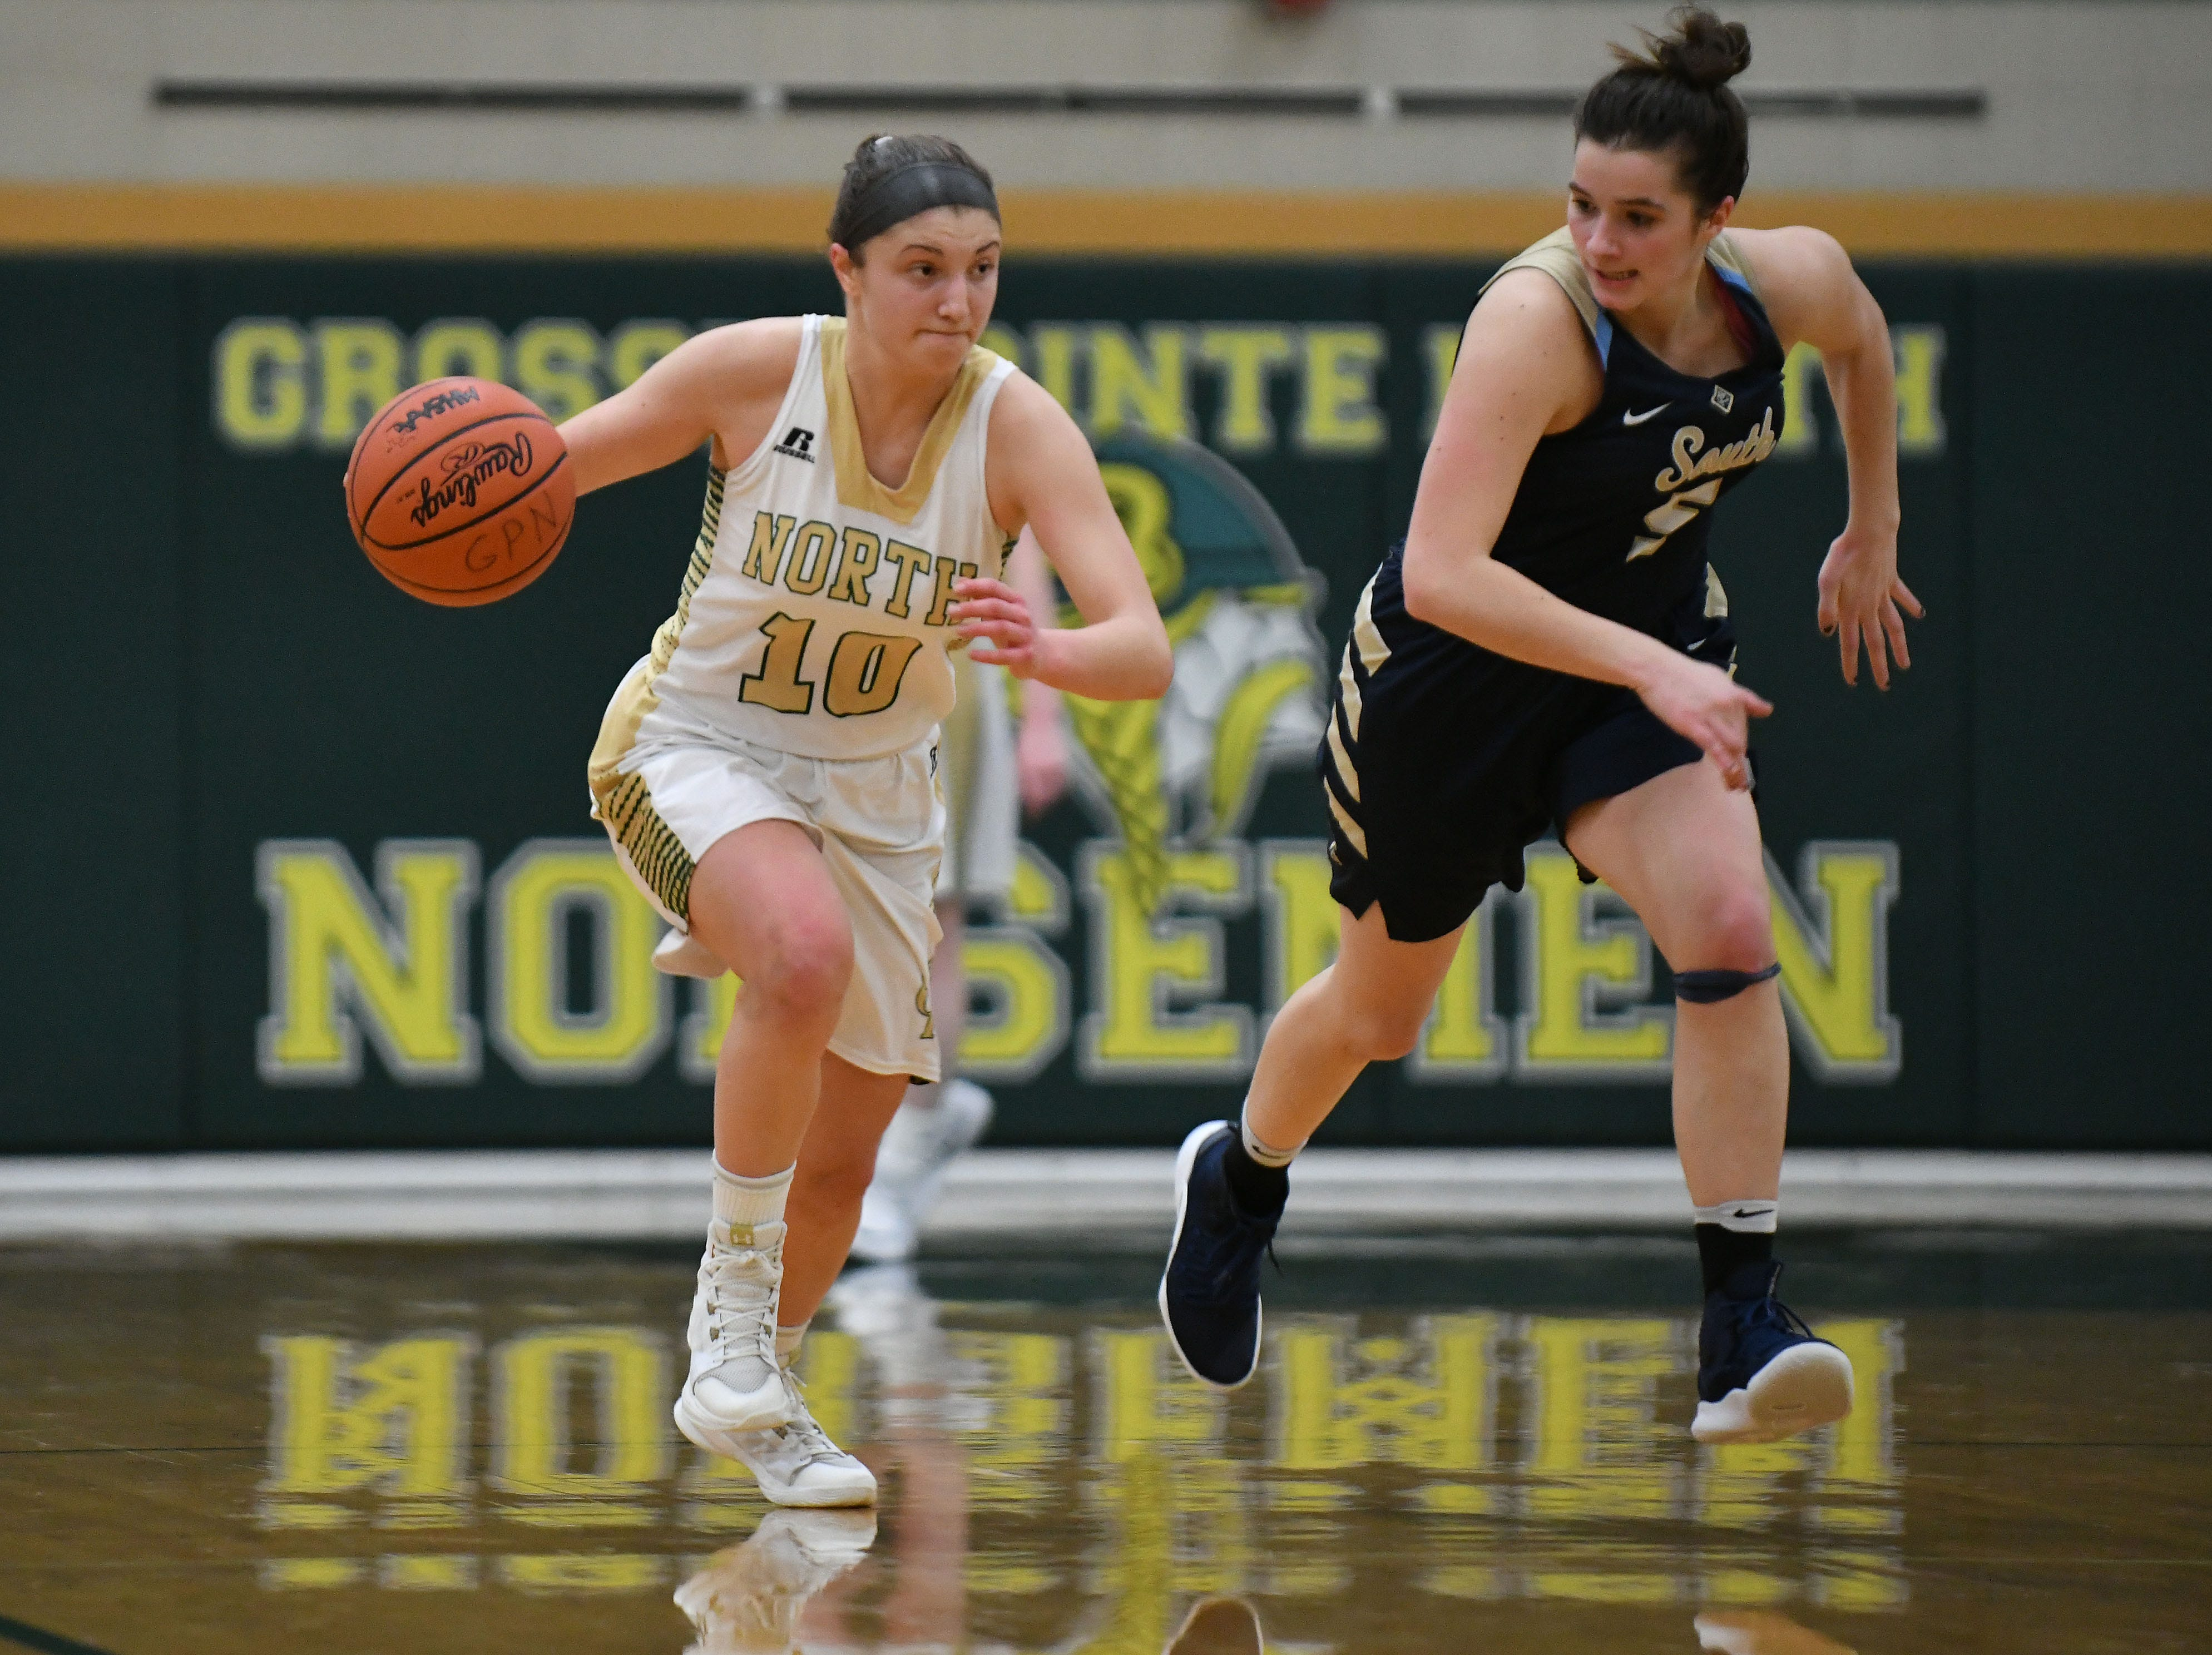 North's Evelyn Zacharias dribbles up court with South's Savannah Srebernak on her heels during the second half.